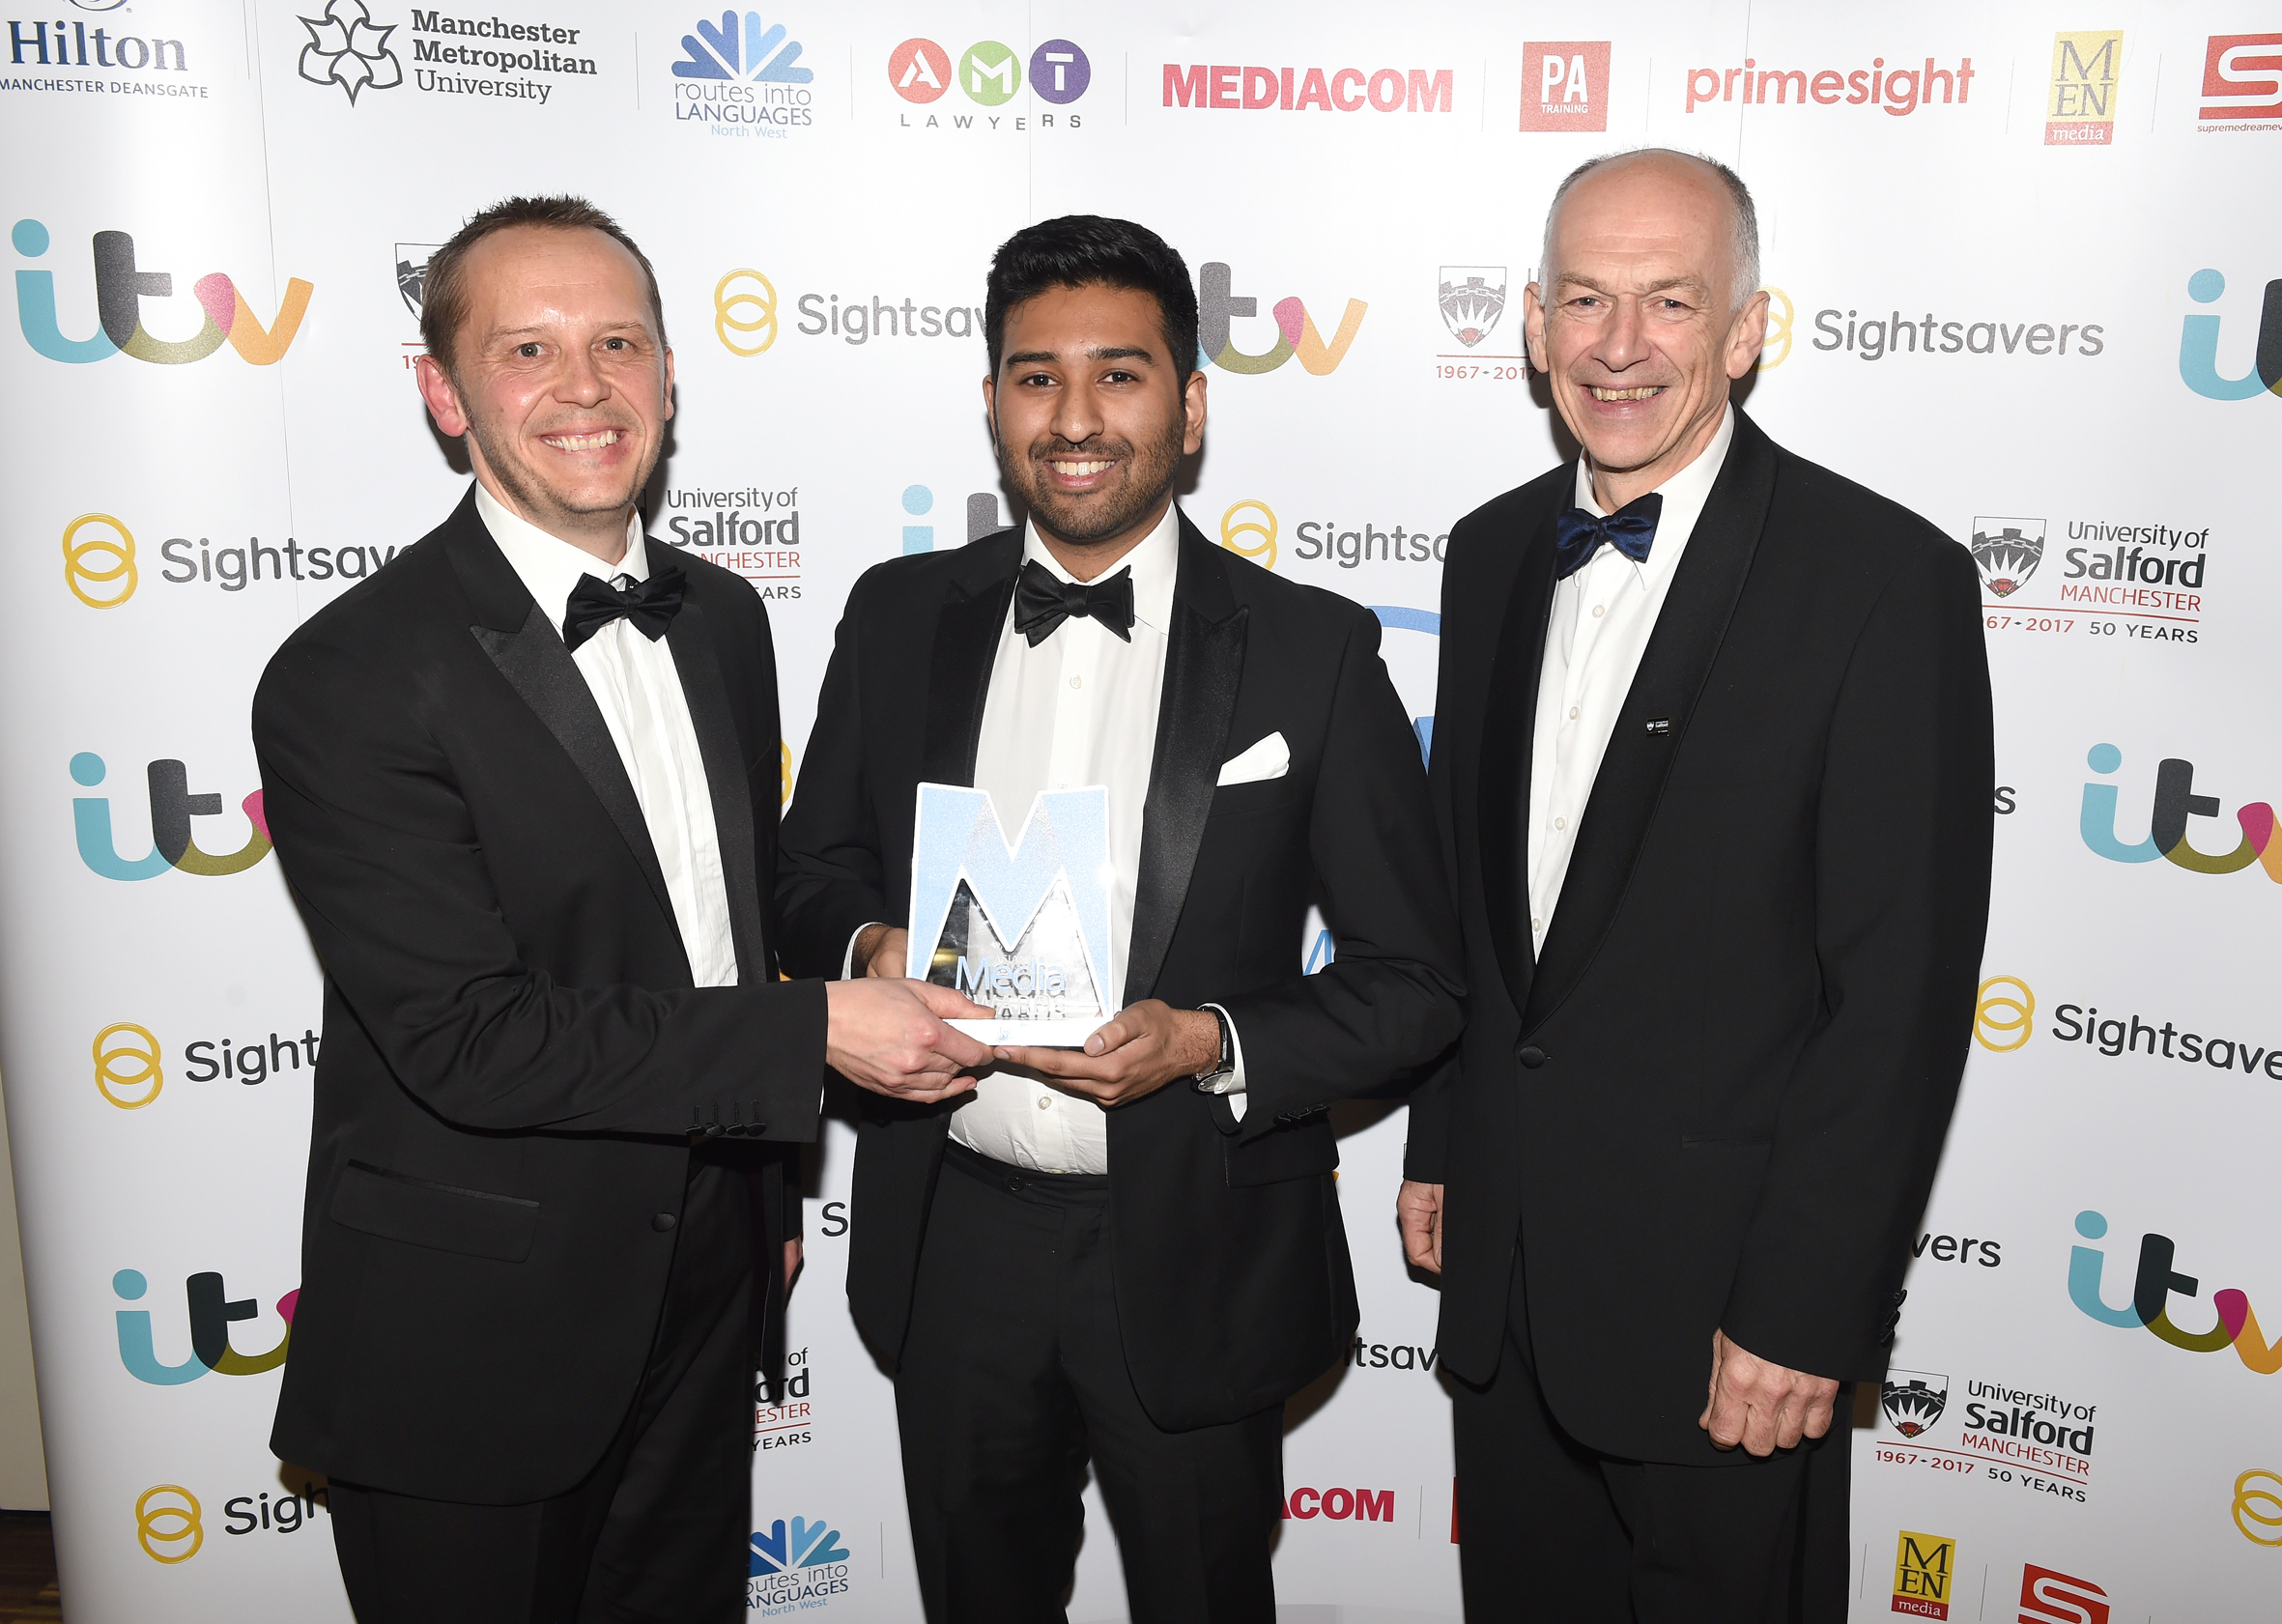 Shehab Khan of the Independent is Outstanding Young Journalist 2017